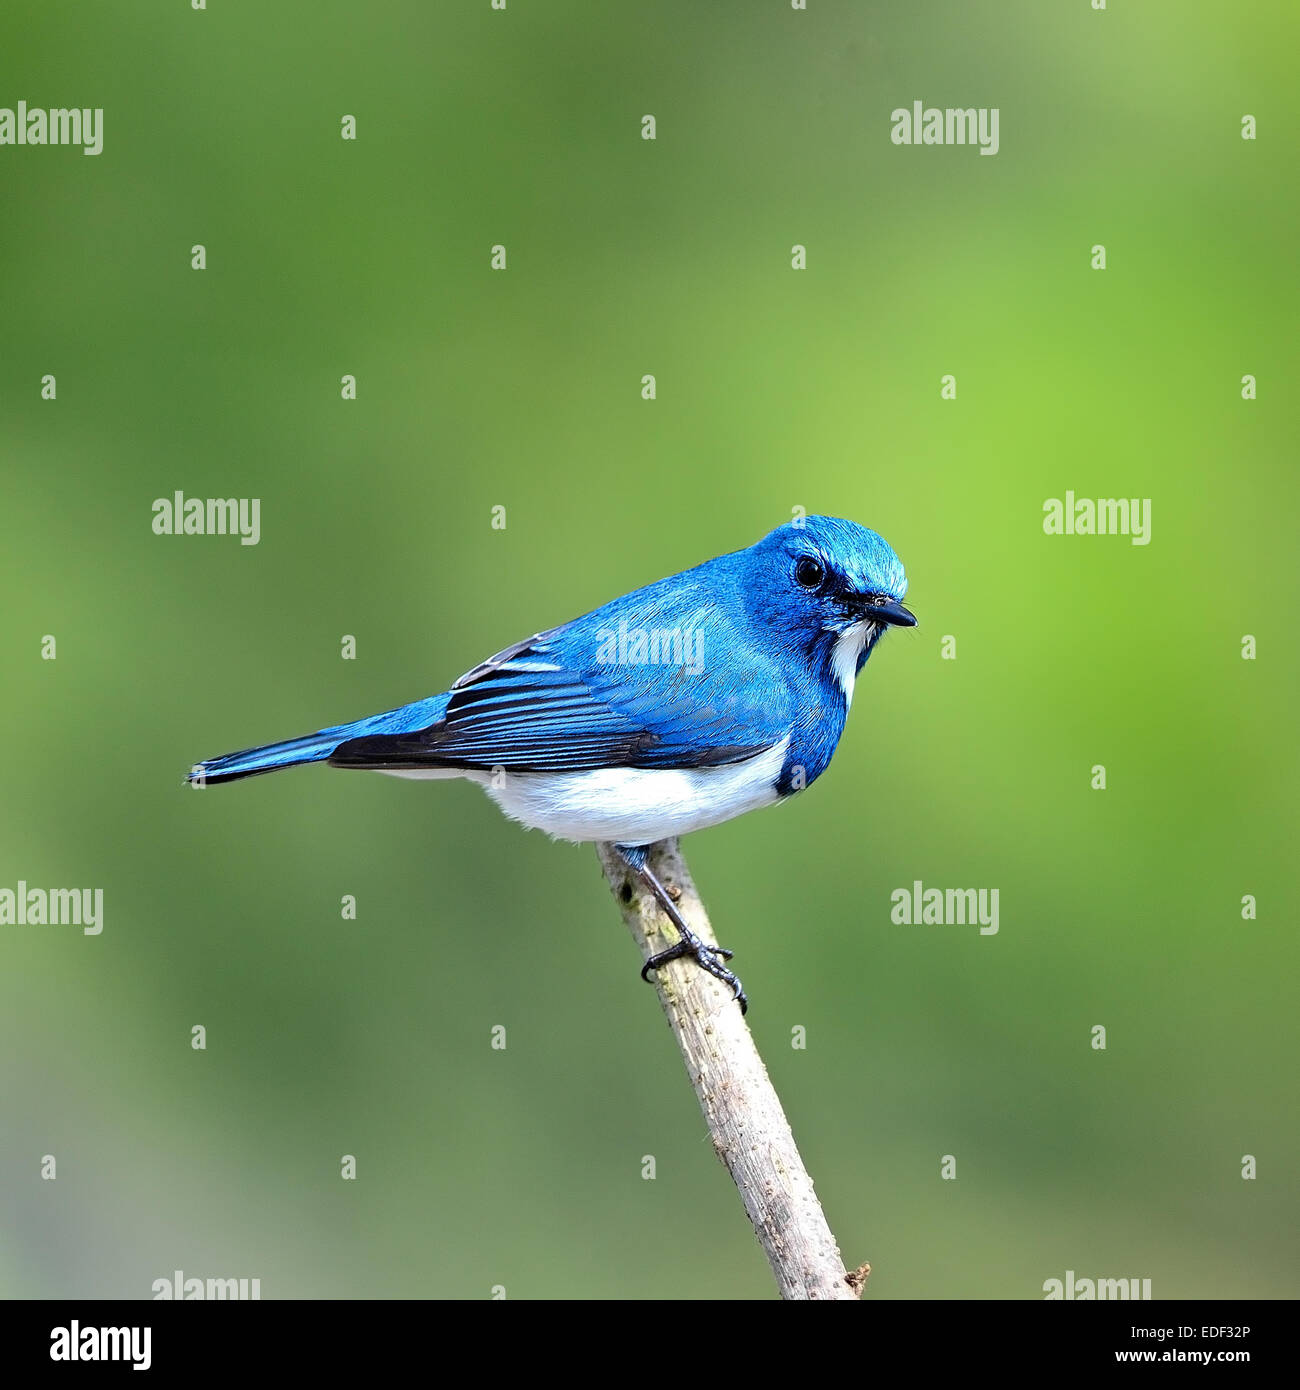 Colorful blue and white bird, male Ultramarine Flycatcher (Ficedula superciliaris) , perching on a branch, back - Stock Image